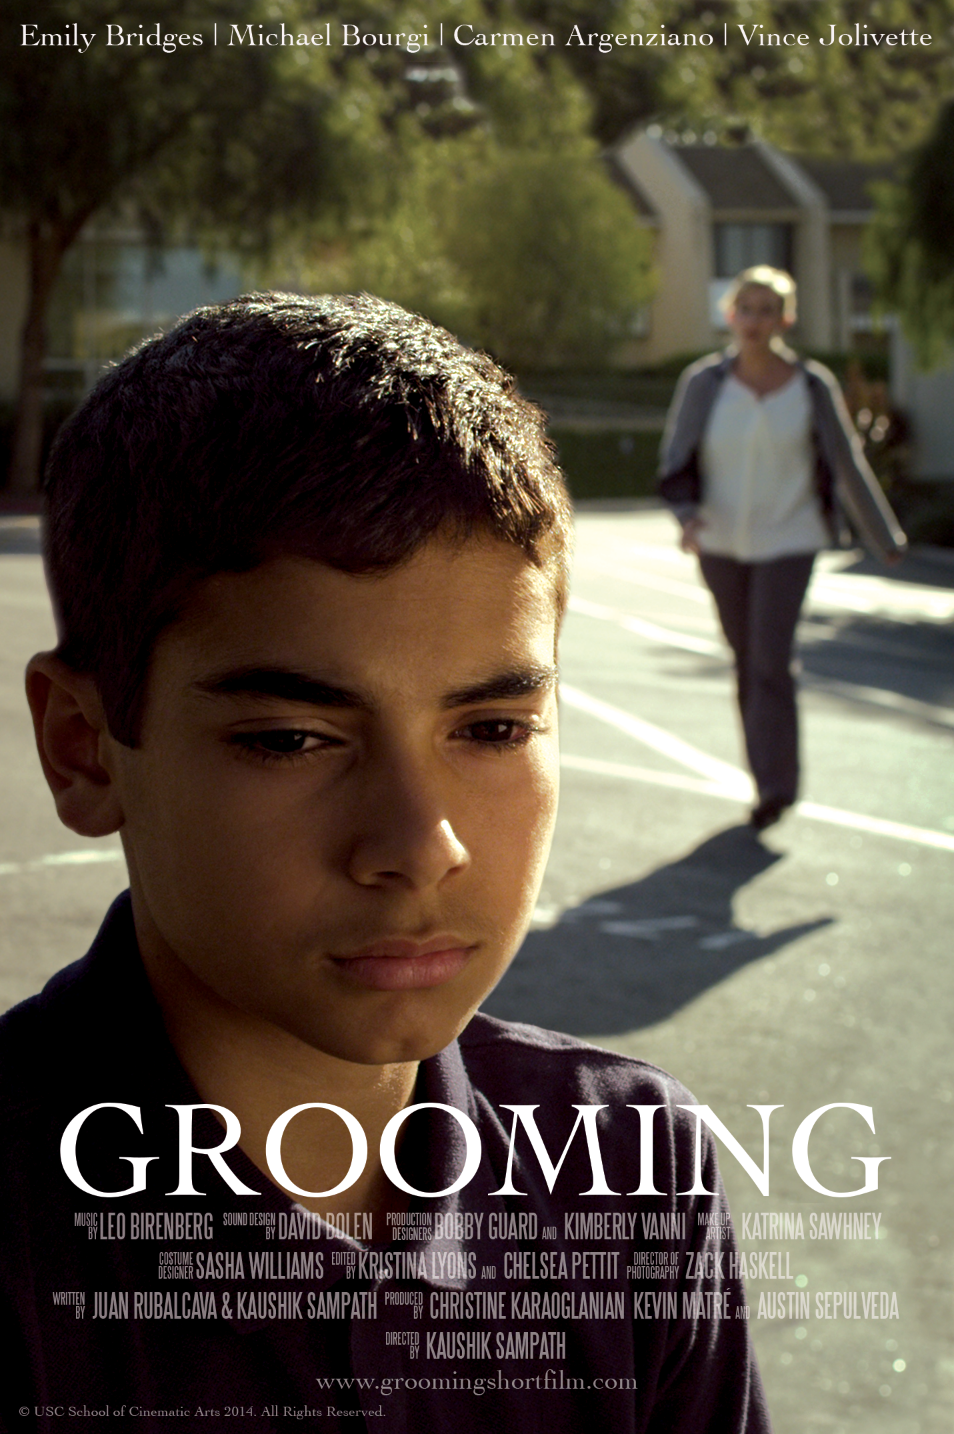 GROOMING-Official Poster.png